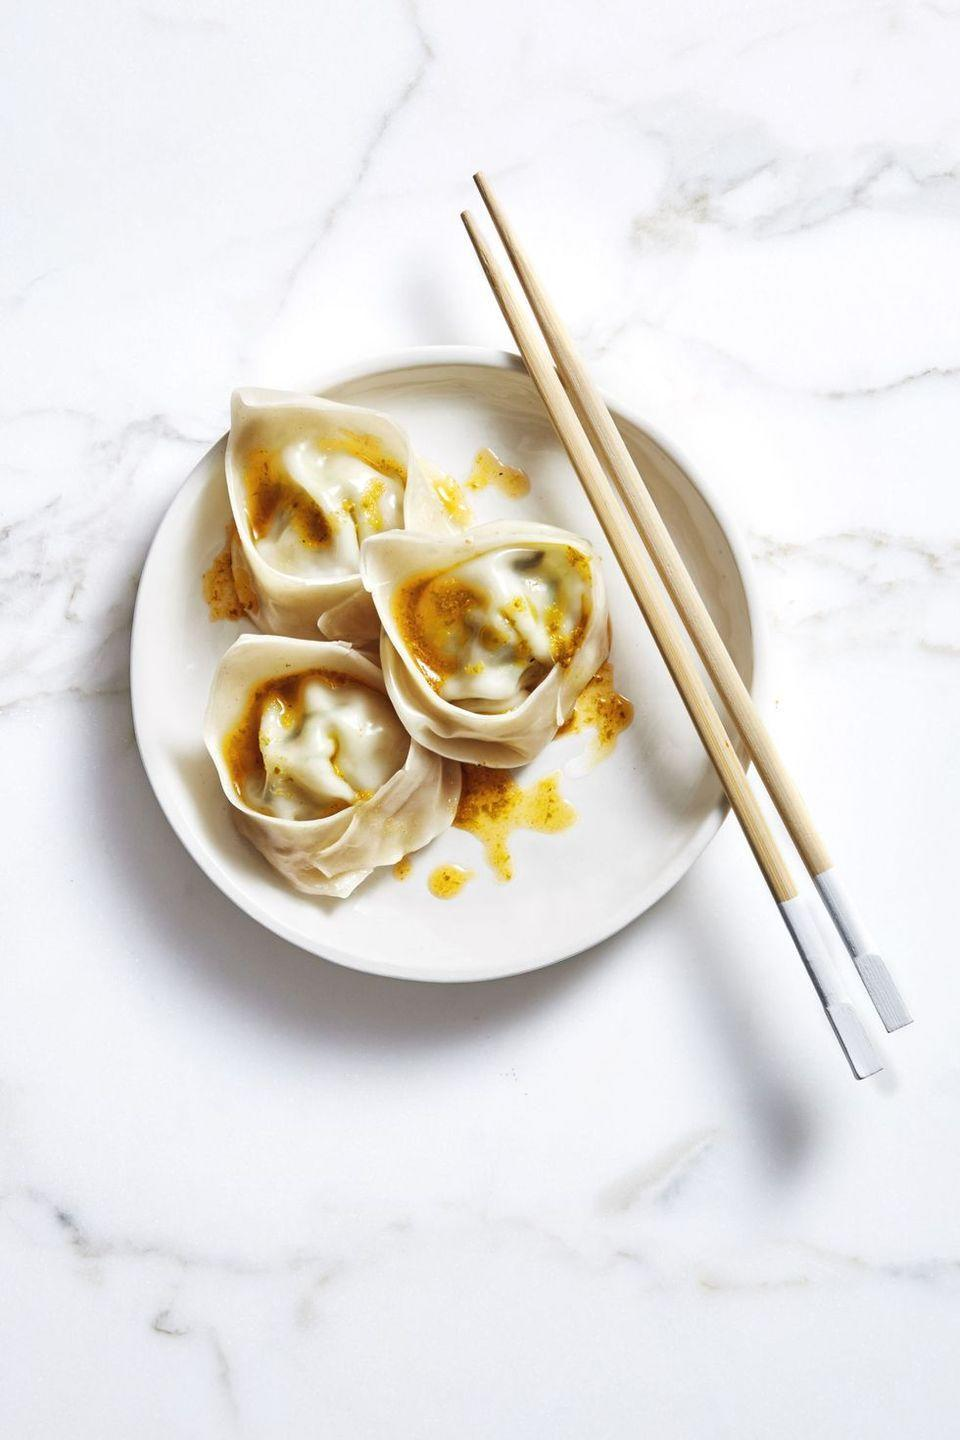 """<p>These delicious dumplings are easier to make than you think — and absolutely incredible when served with a spicy chili oil.</p><p><em><a href=""""https://www.goodhousekeeping.com/food-recipes/a47683/gingery-pork-and-chive-wontons-recipe/"""" rel=""""nofollow noopener"""" target=""""_blank"""" data-ylk=""""slk:Get the recipe for Gingery Pork and Chive Wontons »"""" class=""""link rapid-noclick-resp"""">Get the recipe for Gingery Pork and Chive Wontons »</a></em></p>"""